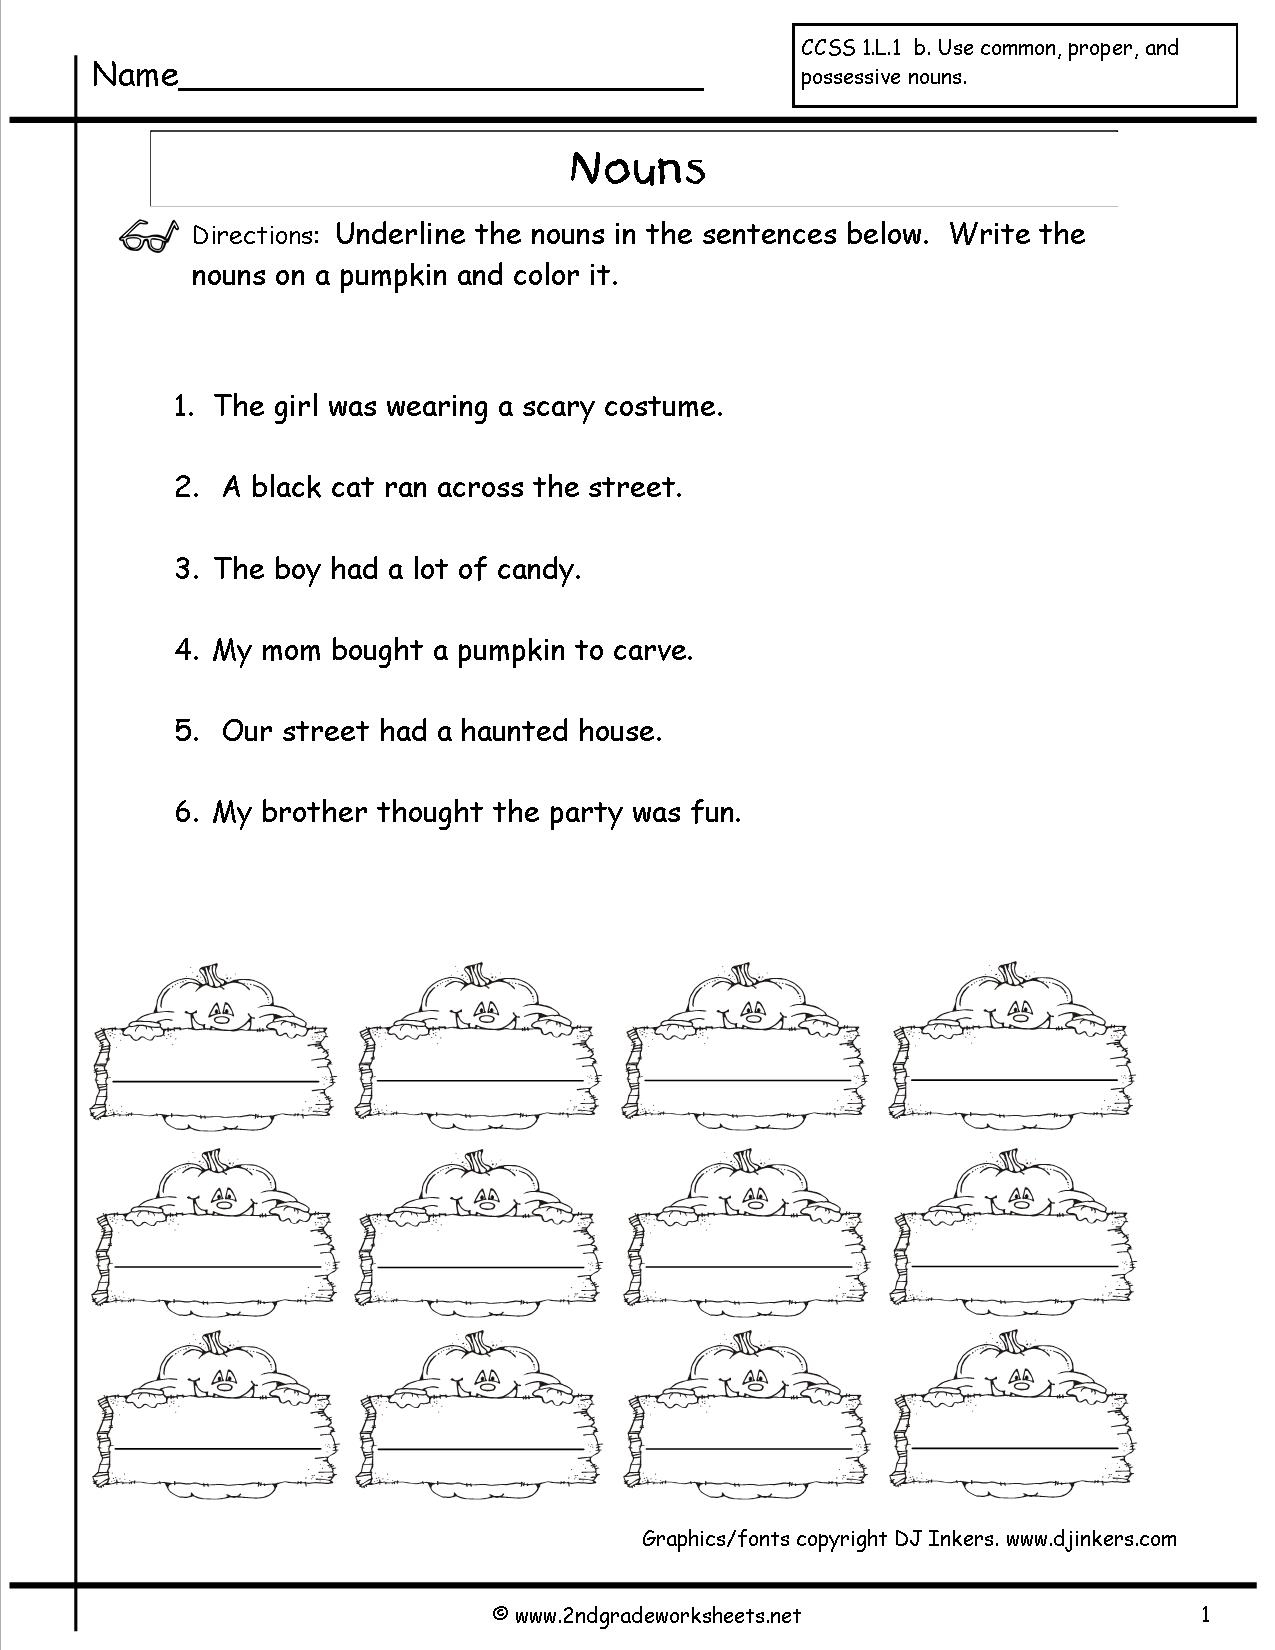 Nouns Worksheets And Printouts - Free Printable Verb Worksheets